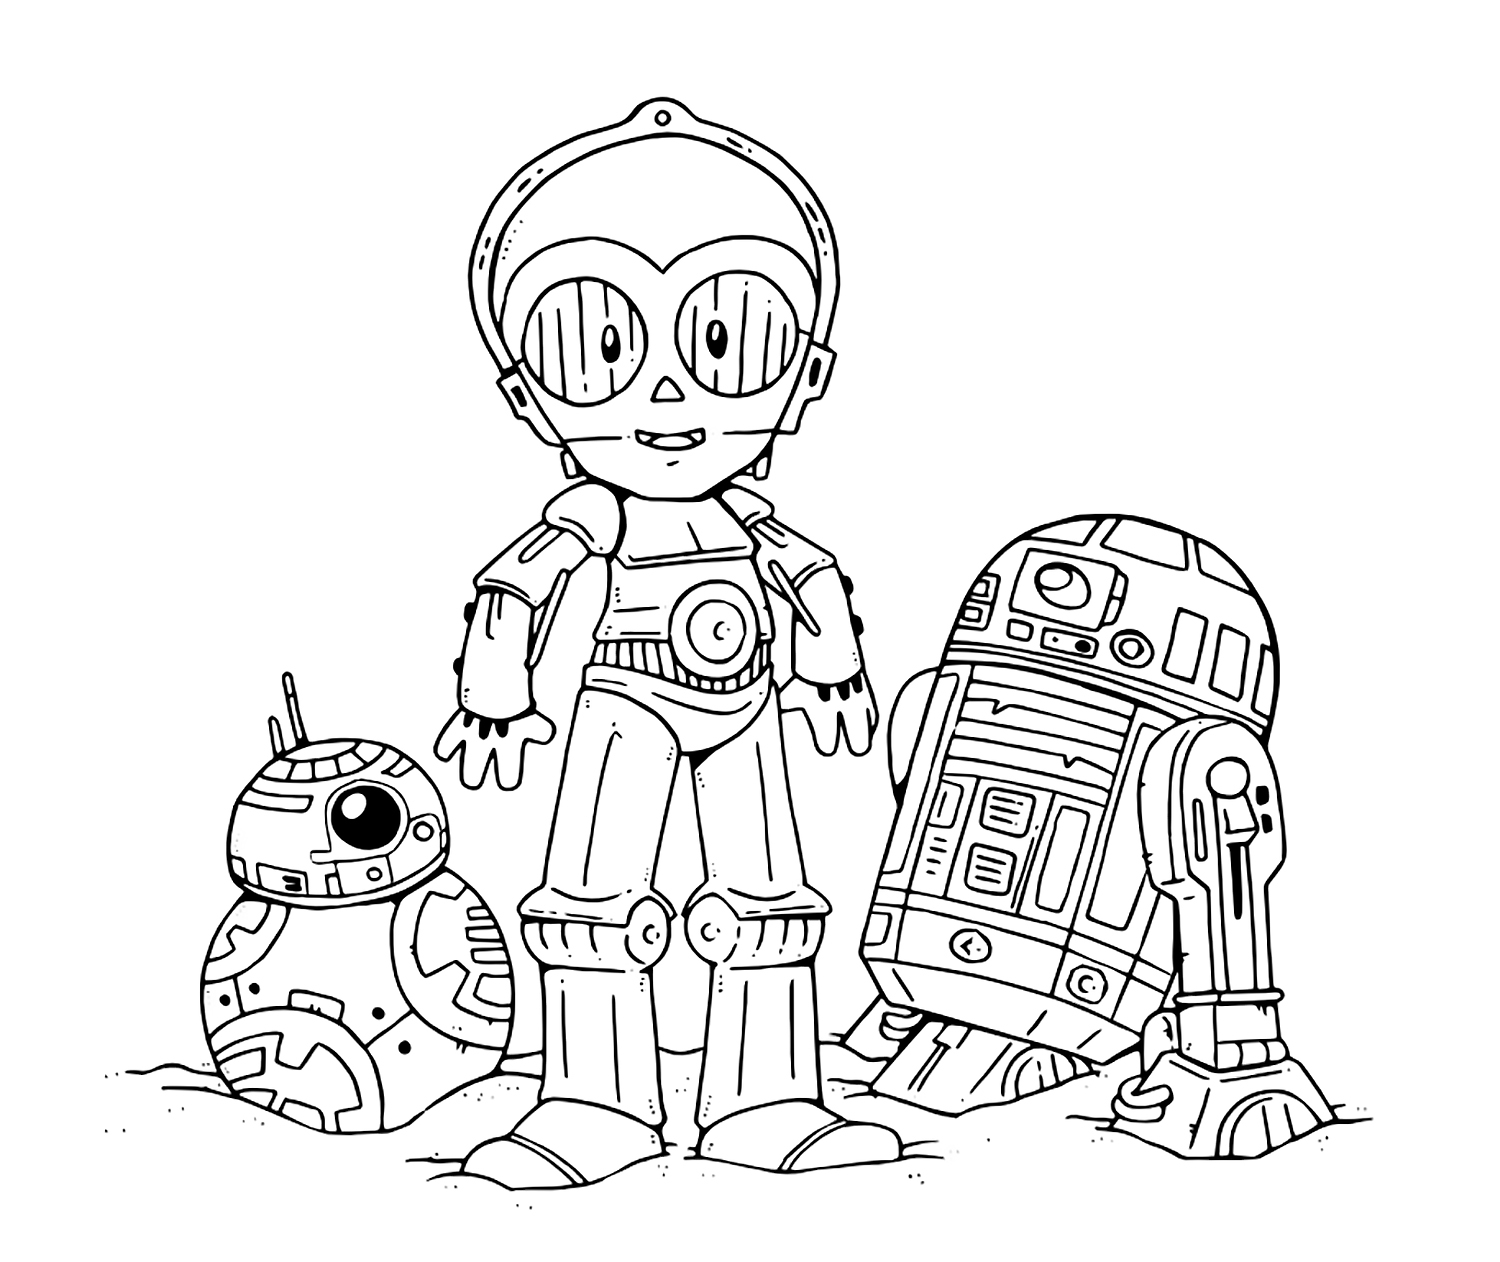 star wars pictures to color star wars to color for children star wars kids coloring star pictures wars to color